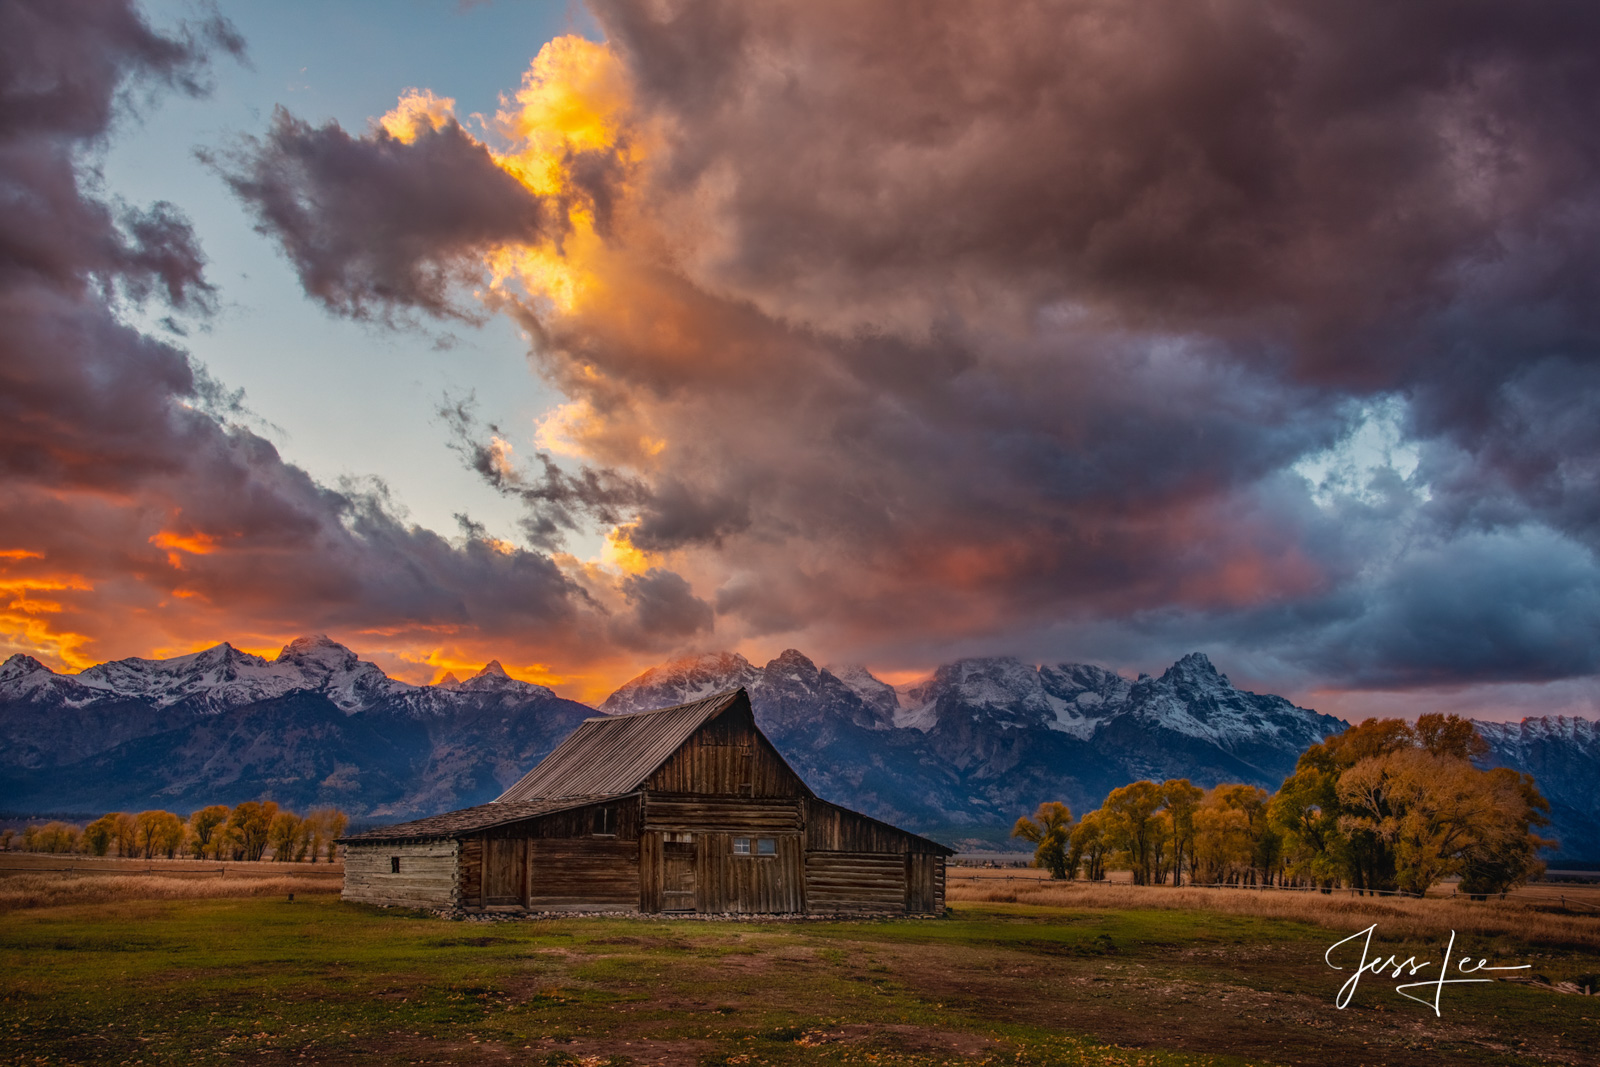 photo of Grand Tetons in Wyoming, barn photo, sunset, autumn colors, fall, mountain photography, quality, museum, fine art, print, jess lee, artist, western, cowboy, photographer, limited edition, hig, photo